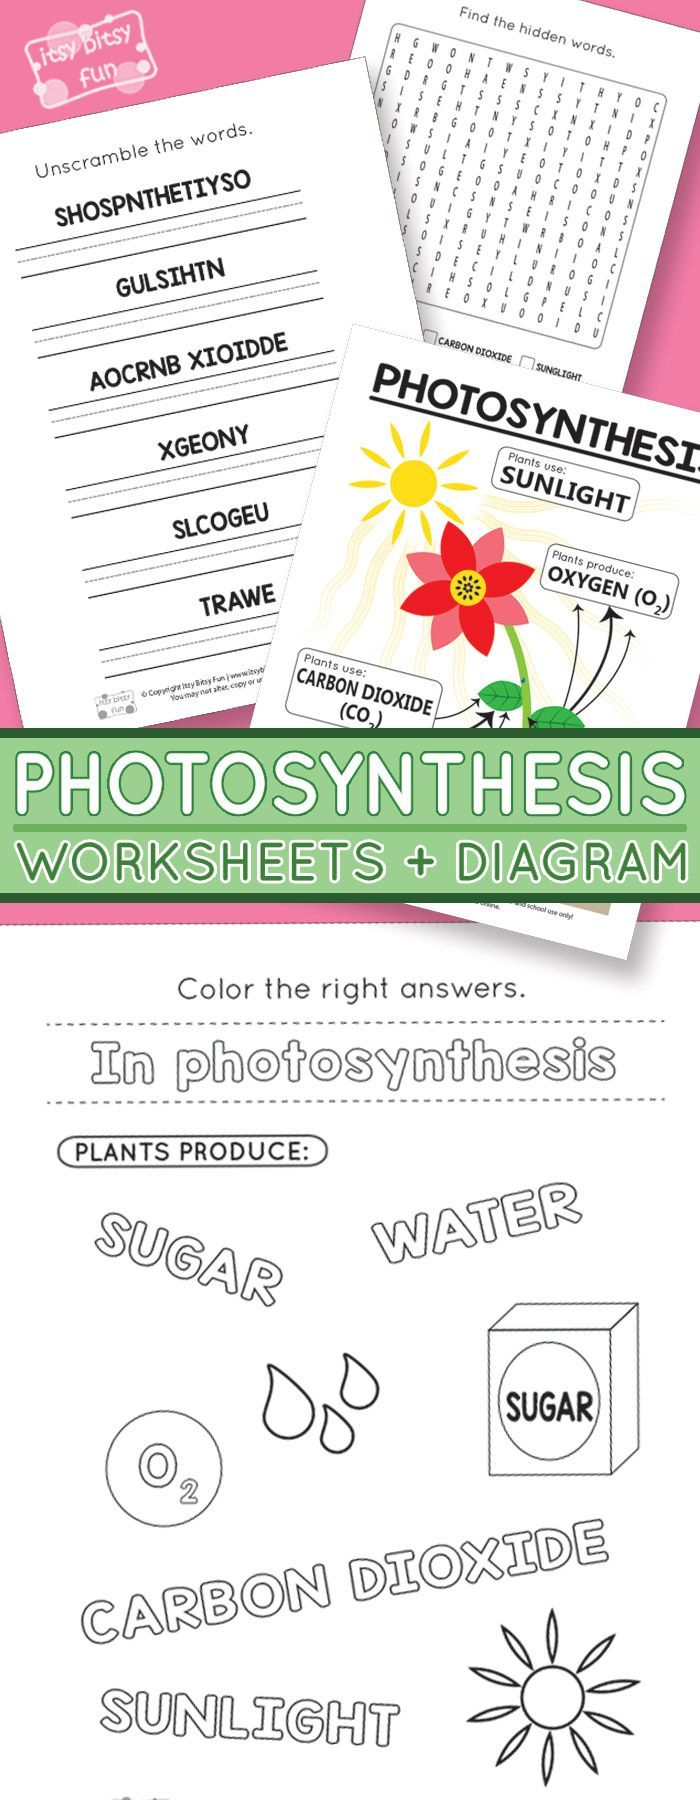 Photosynthesis Worksheets For Kids Itsybitsyfun Com Photosynthesis Worksheet Photosynthesis Activities Photosynthesis